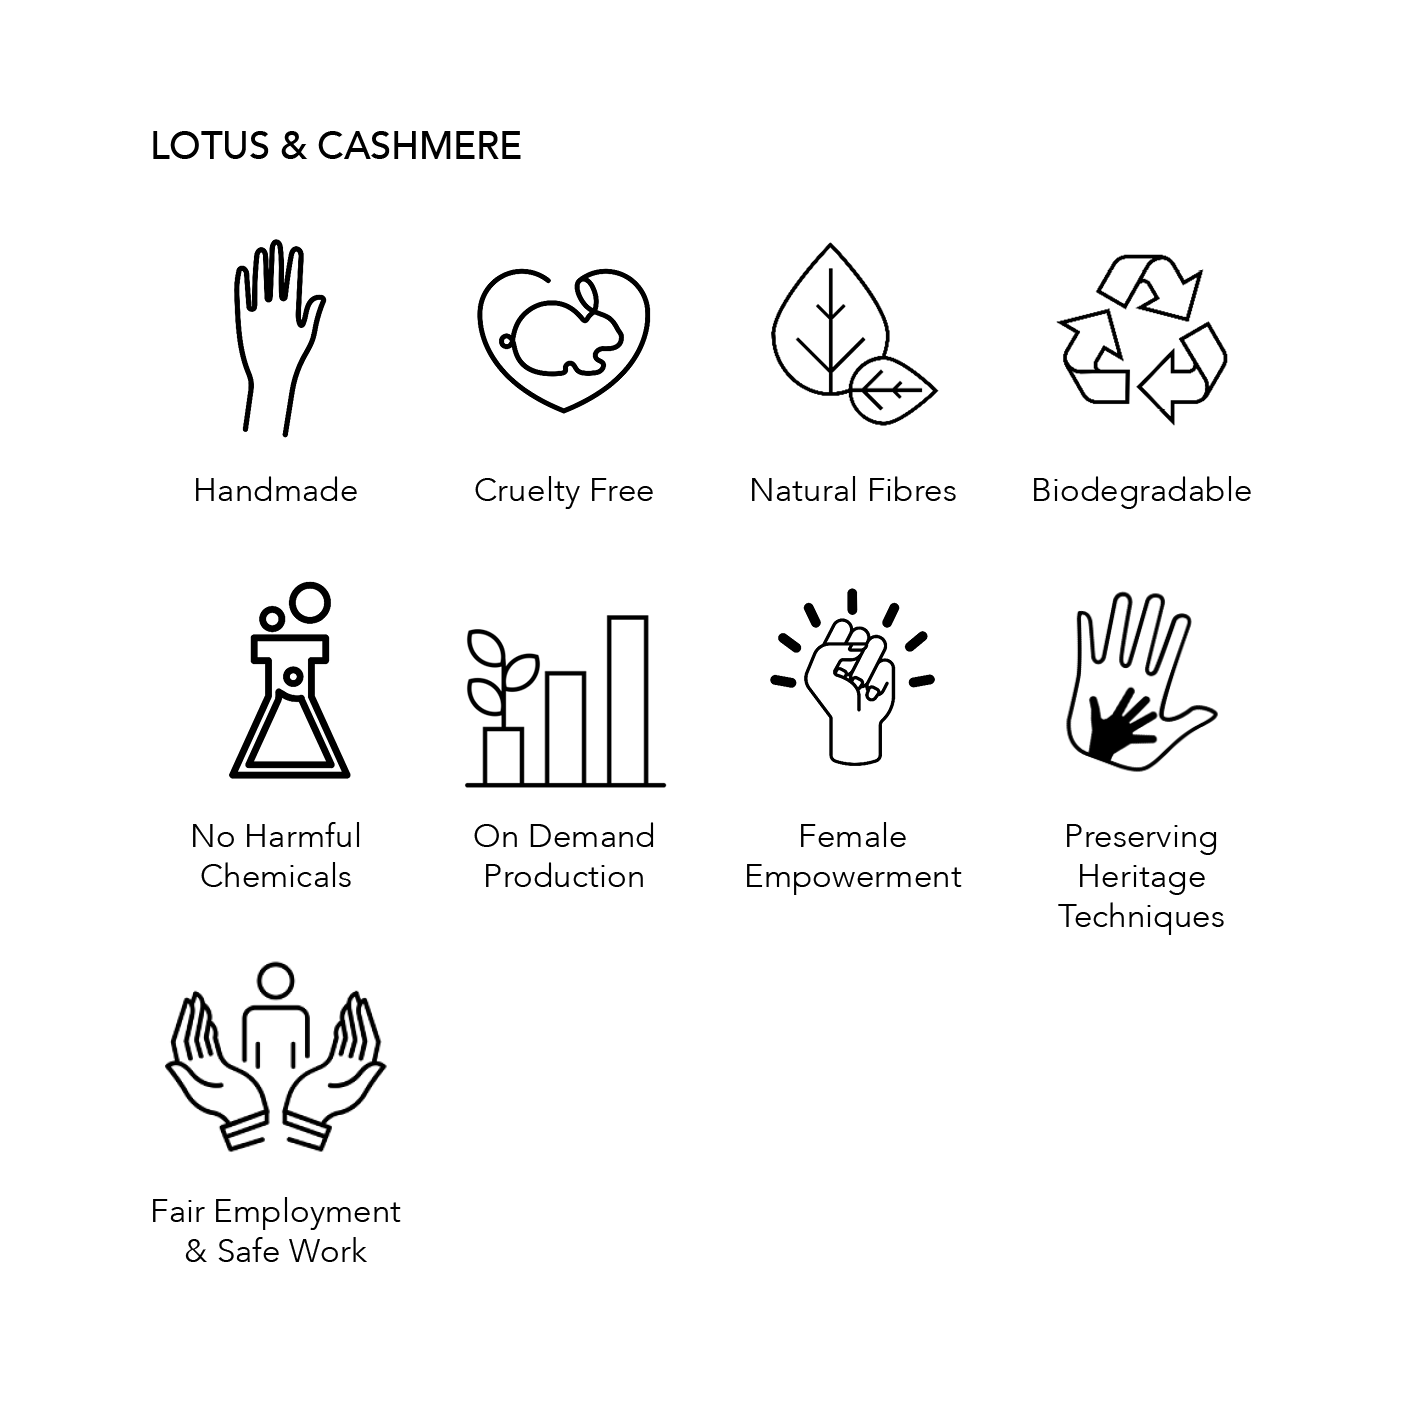 Lotus & Cashmere Sustainability Credentials; handmade, cruelty free, natural fibres, biodegradable, no harmful chemicals, on demand production, female empowerment, preserving heritage techniques, fair employment and safe work